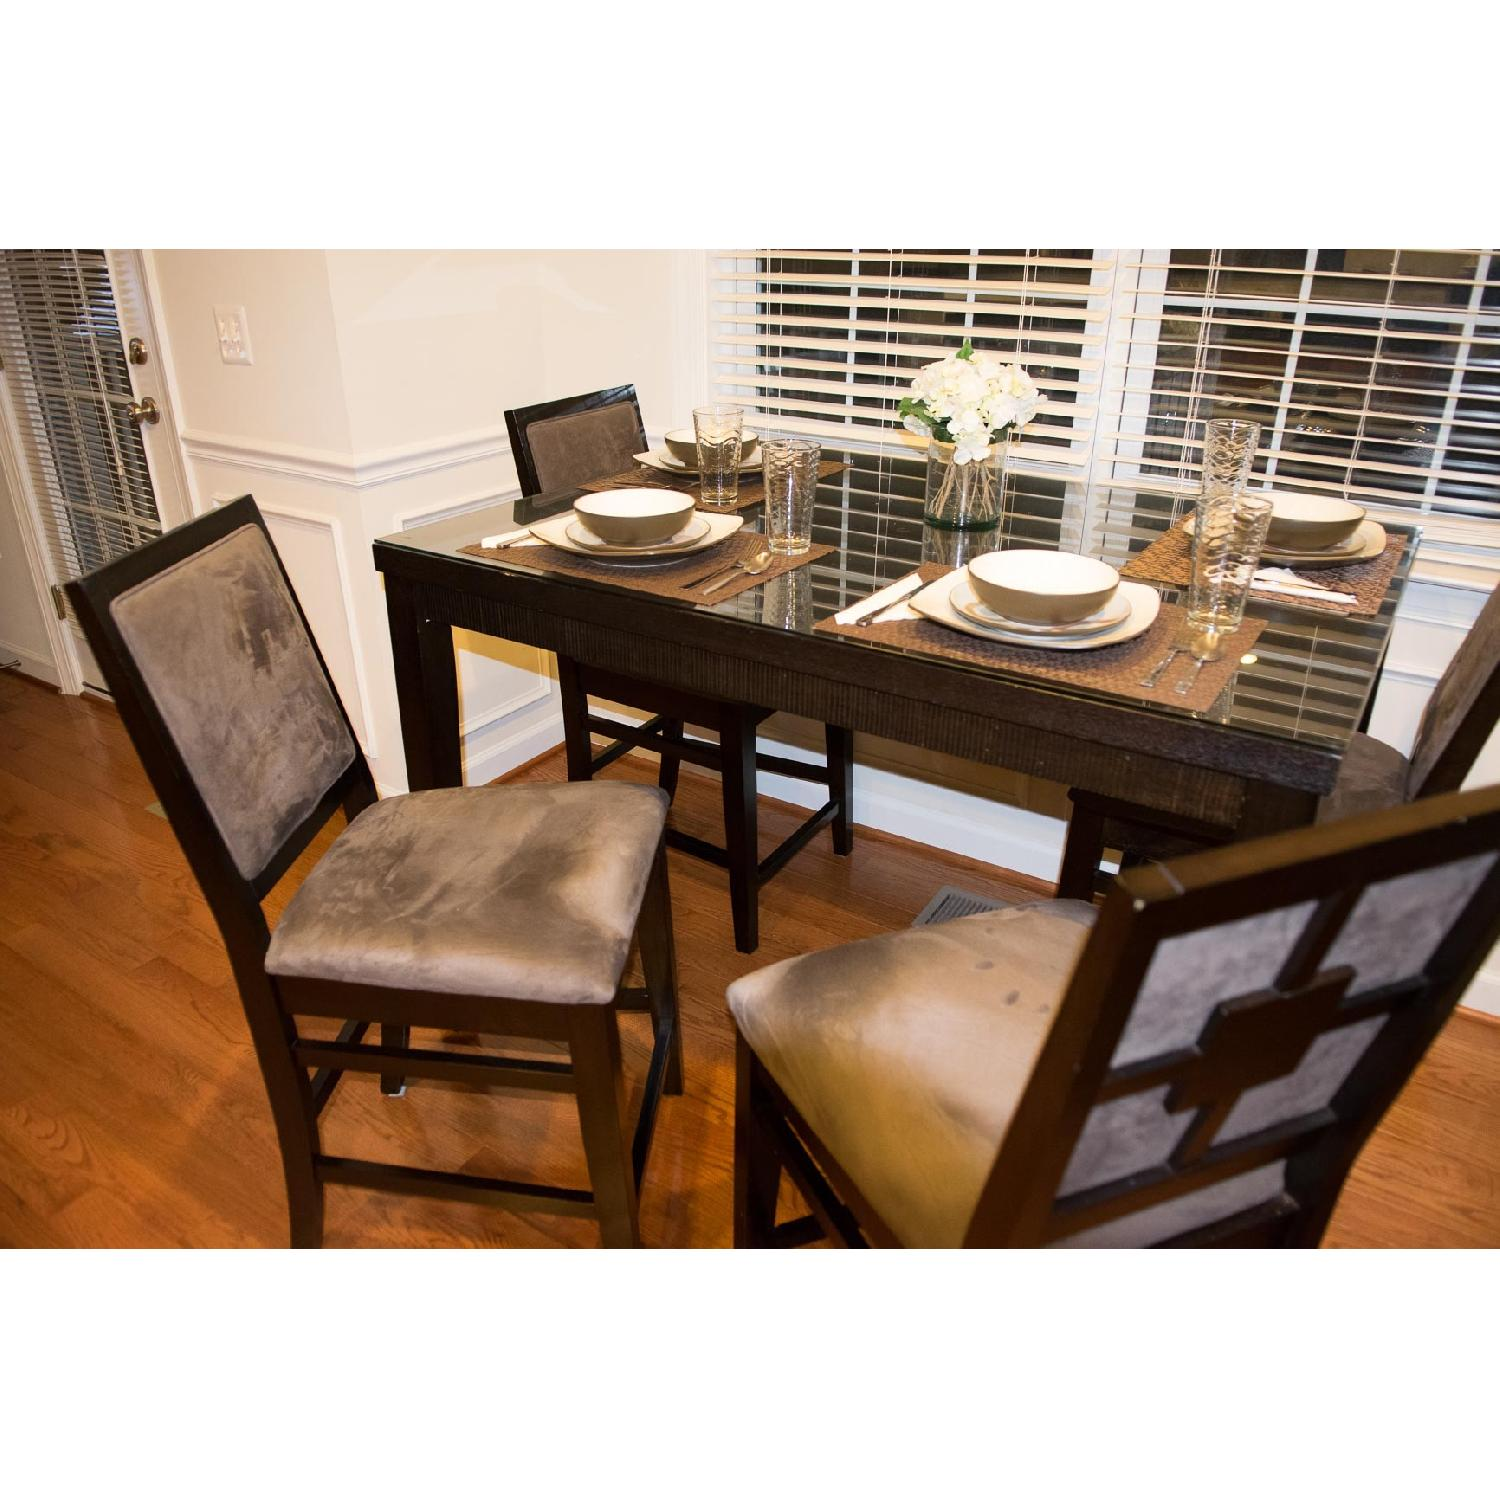 Value City Furniture Espresso High Top Expandable Dining Room Table W 4 Chairs Aptdeco